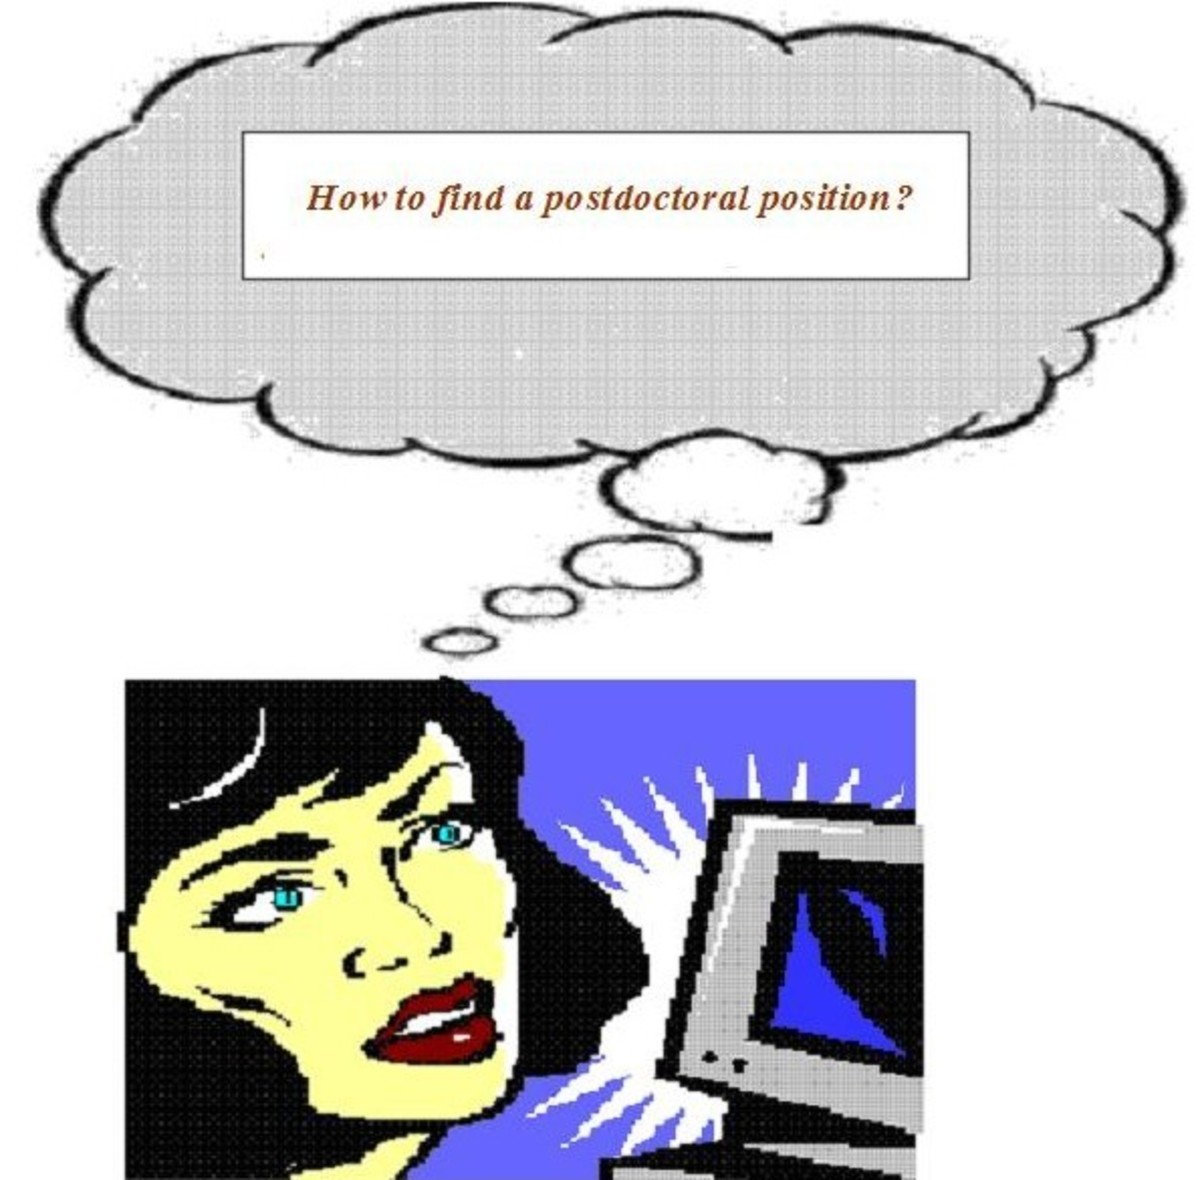 How to find a postdoctoral position?